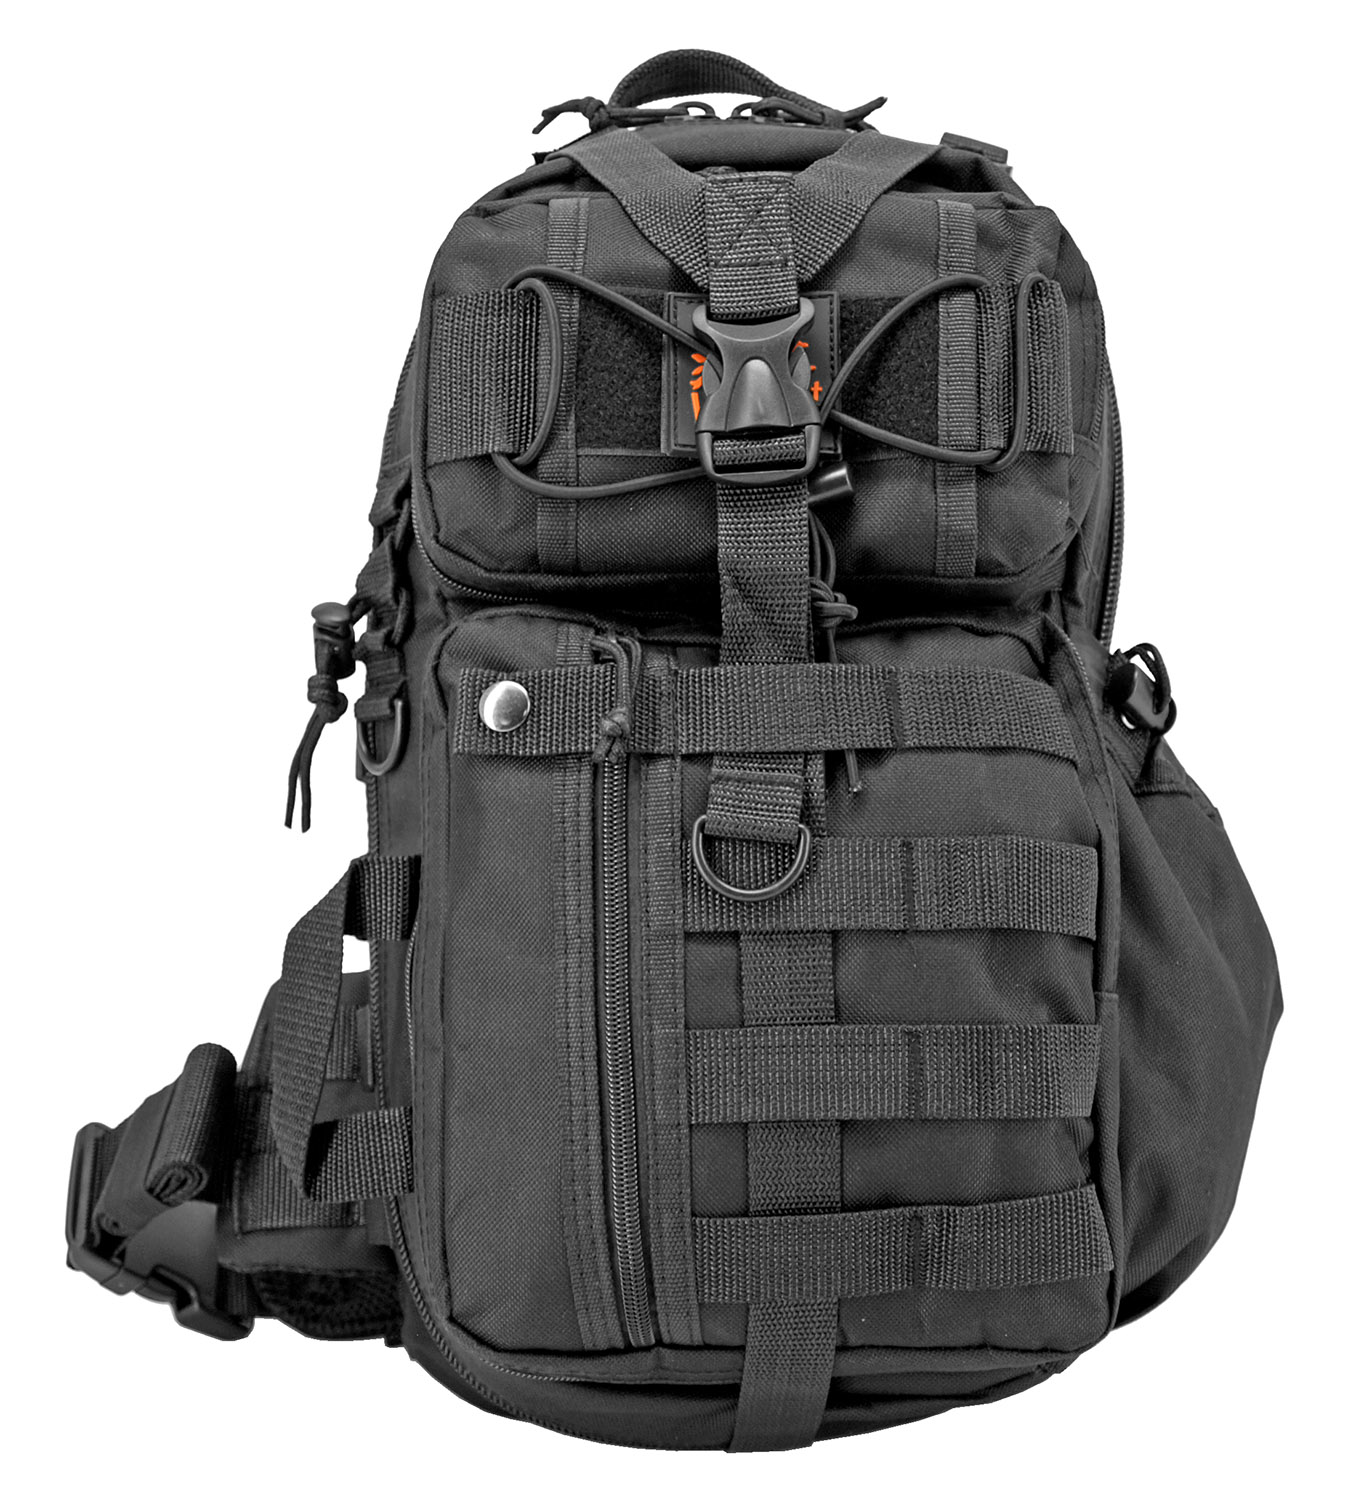 Tactical Readiness Sling Pack - Black